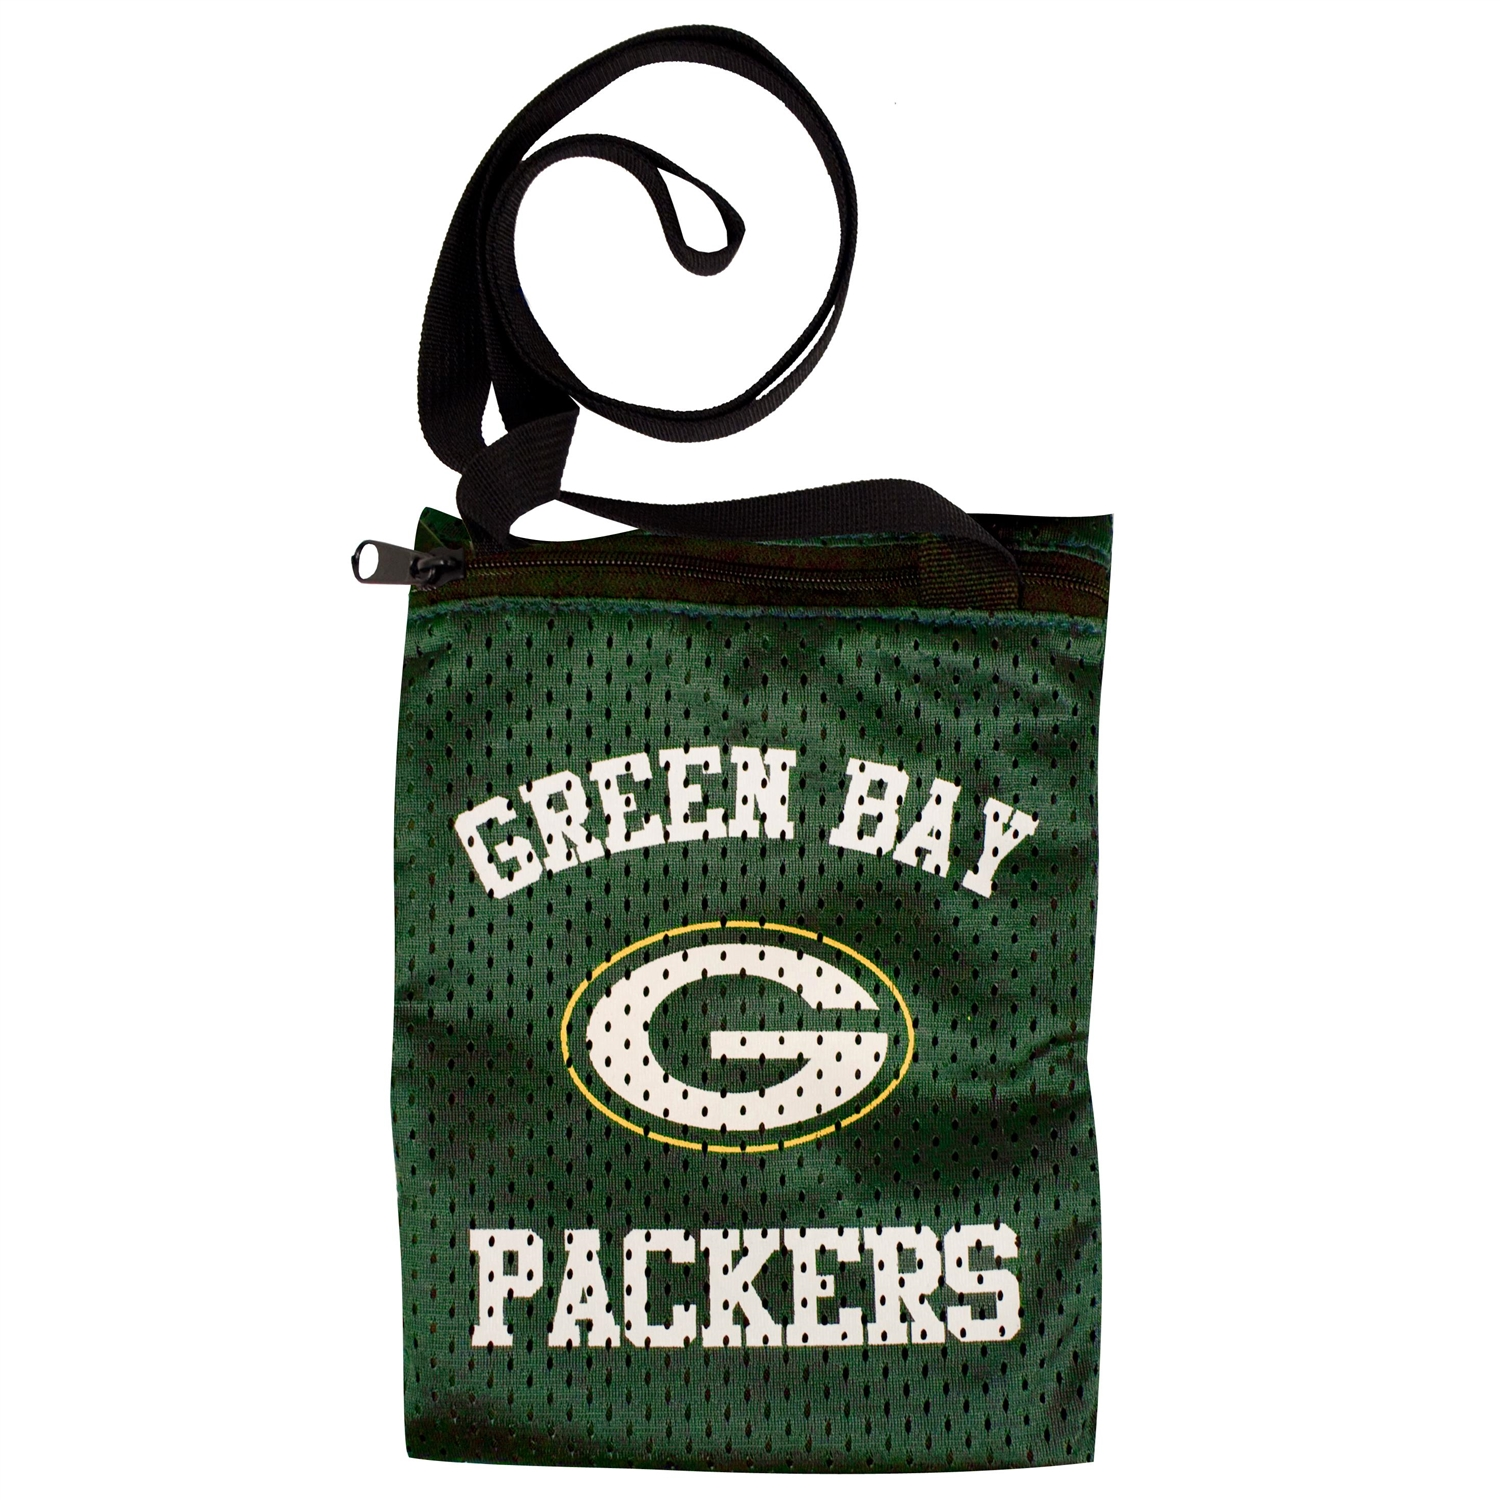 Nfl Football Green Bay Packers Toys Games Puzzles Games - 300103-pack - Green Bay Packers Game Day Pouch 300103-PACK